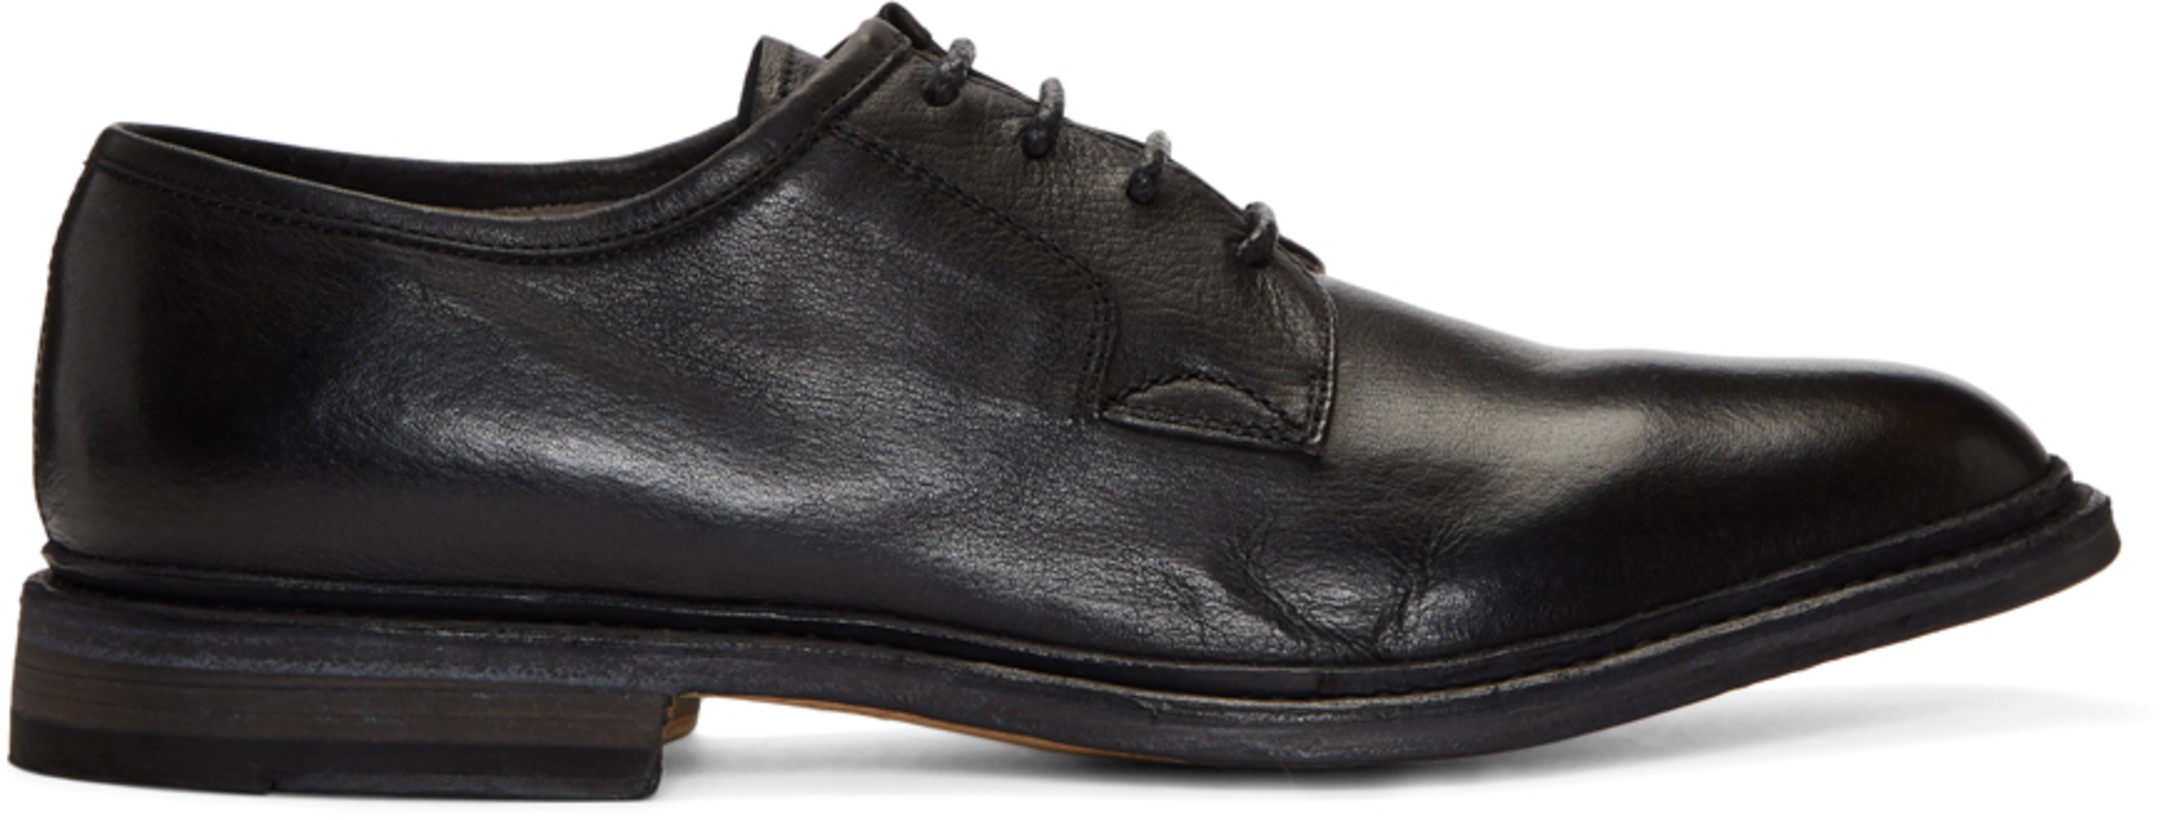 Officine Creative Black Durham 2 Derbys